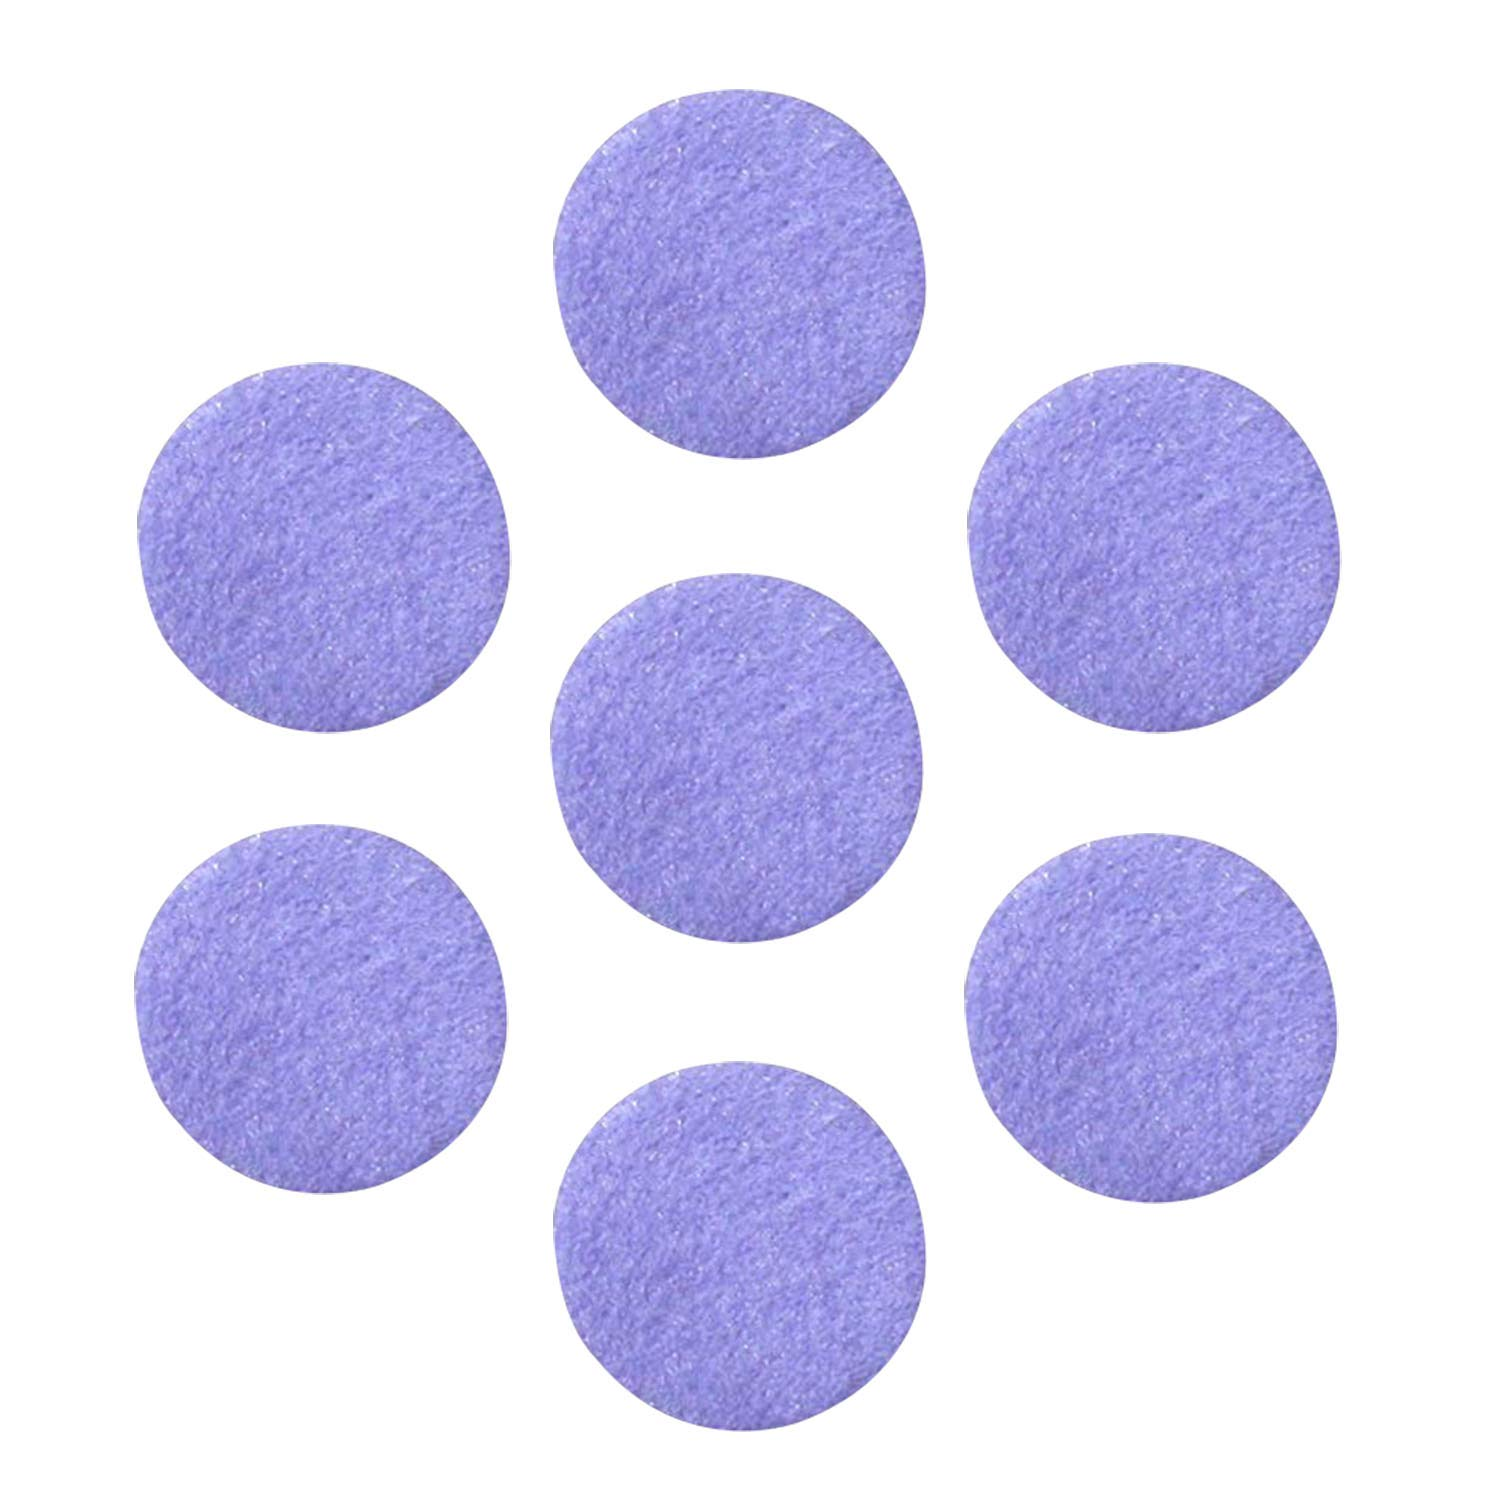 Green Felt Circles for DIY and Sewing Handcraft Adhesive Felt Circles 100 Count, Green 1 Inch